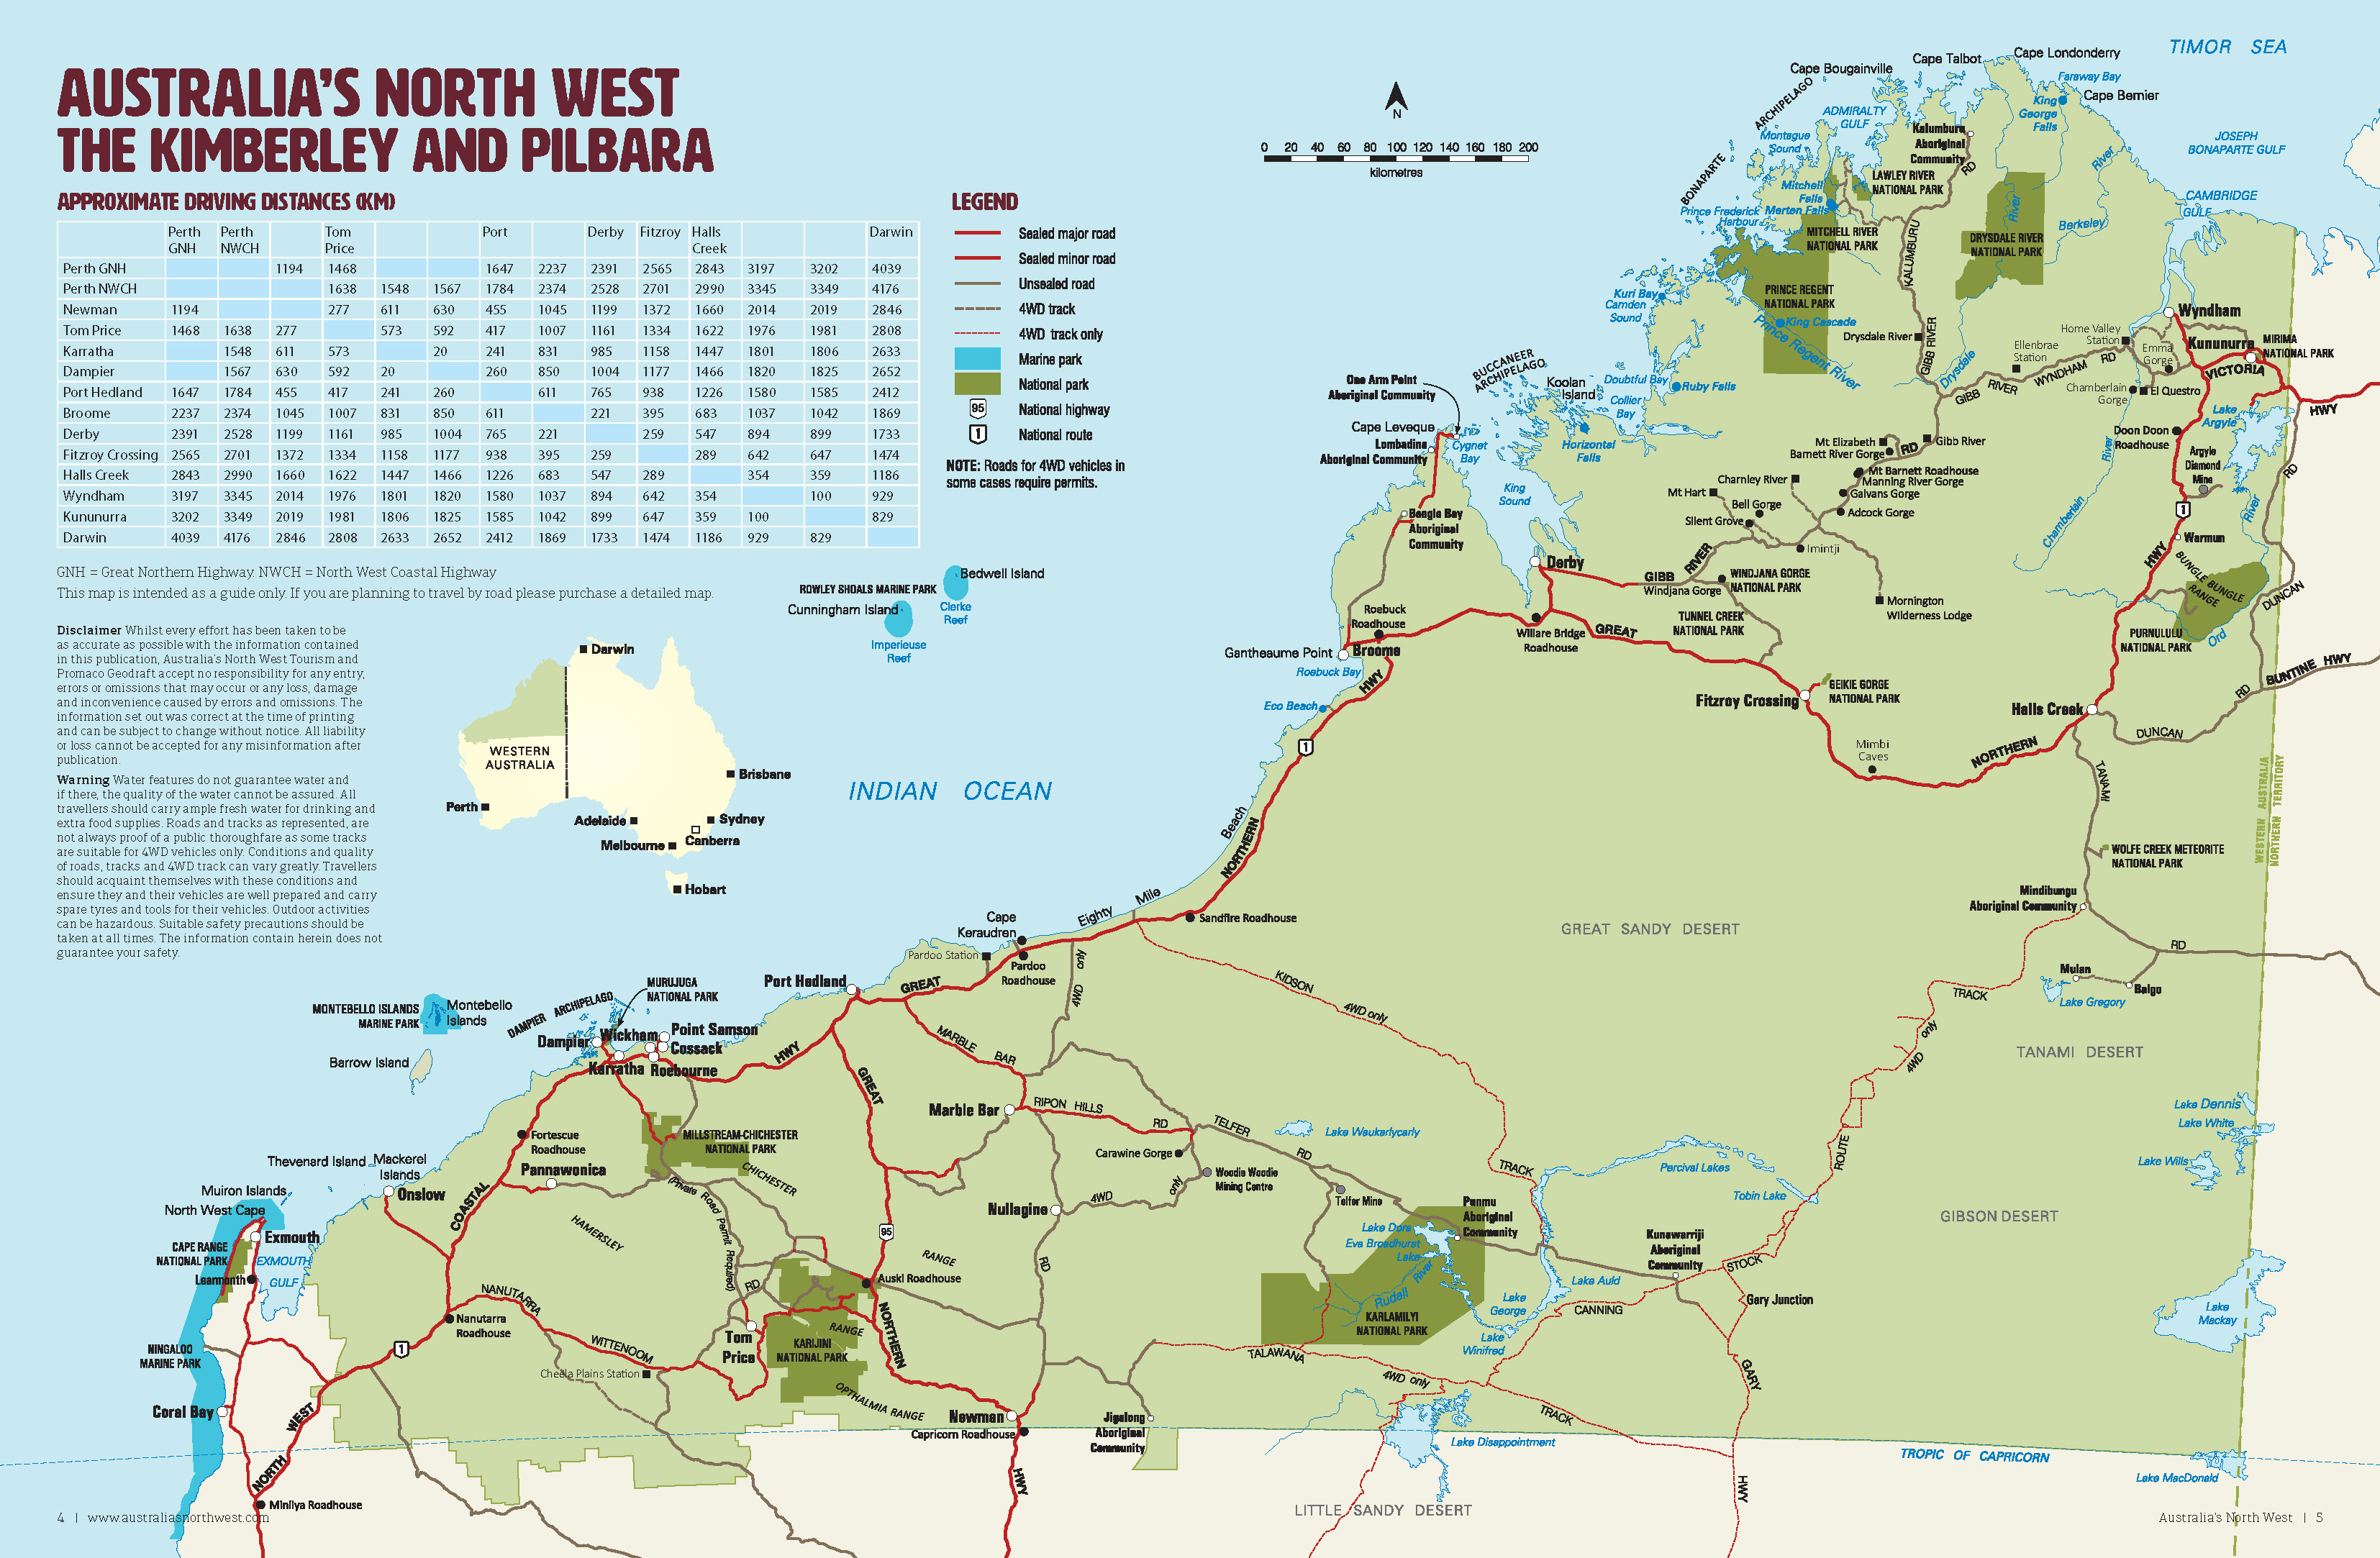 Western Australia 4wd Map.Outback Road Trips Australia S North West